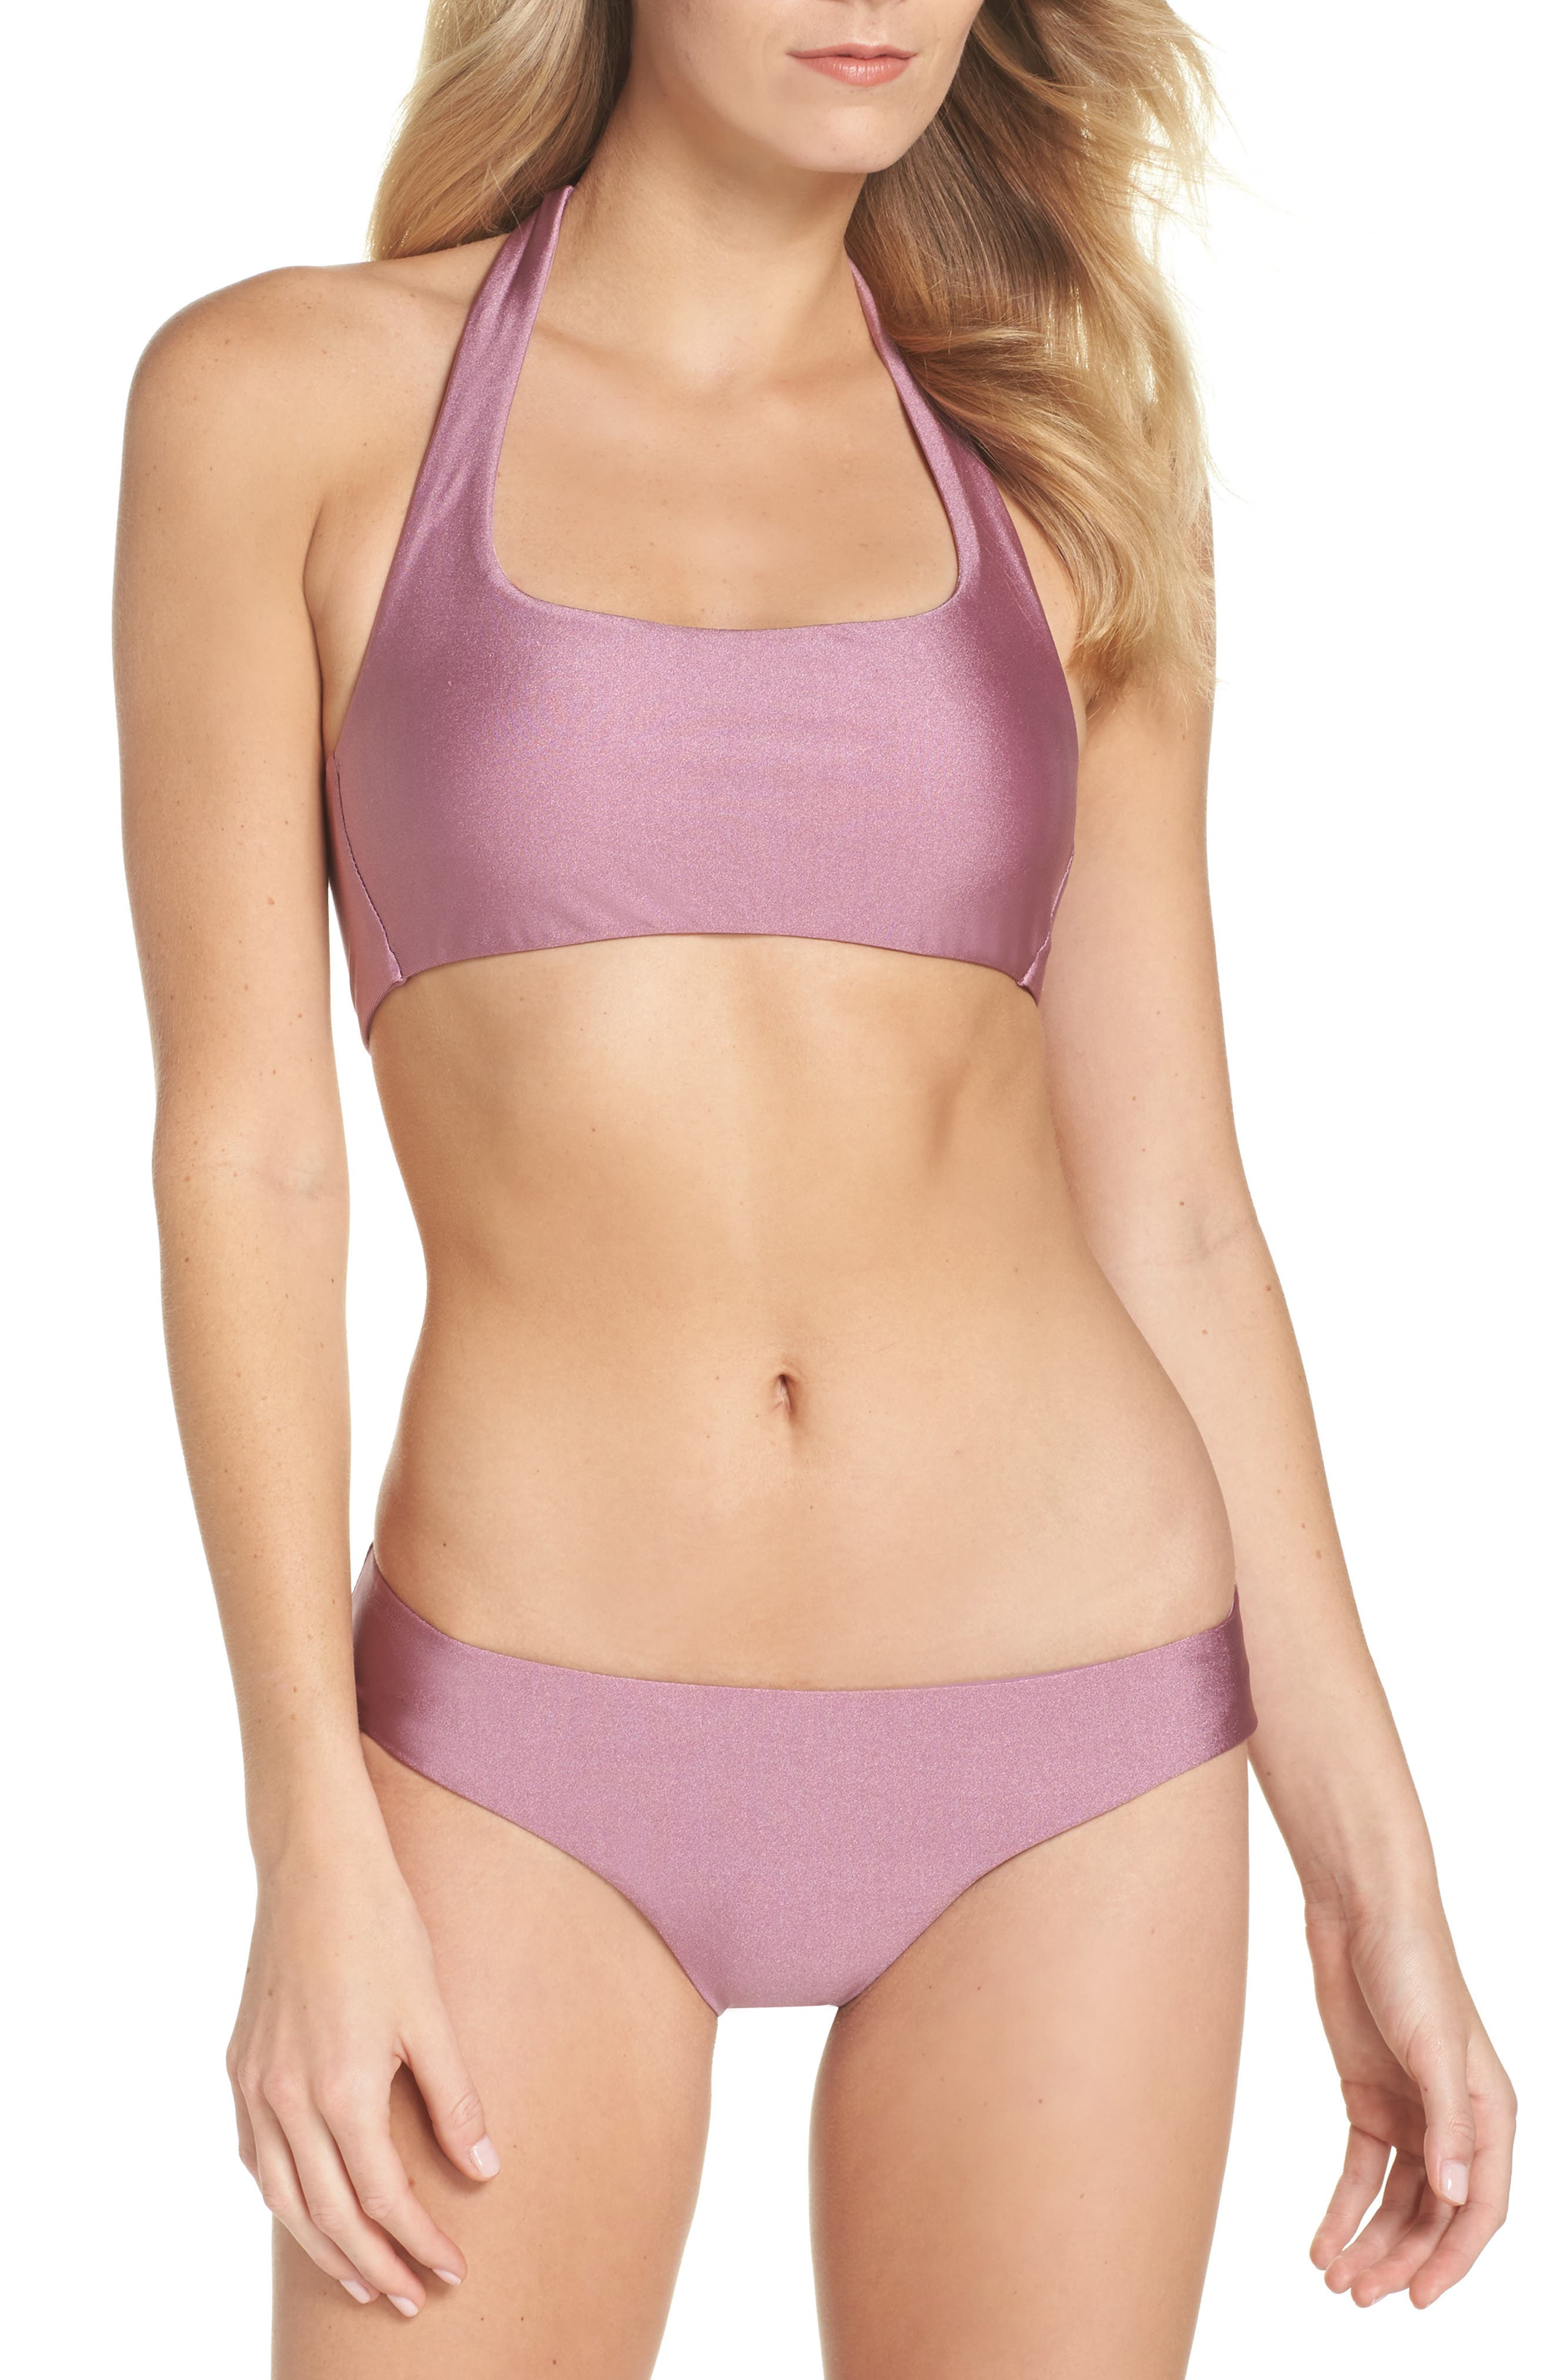 Ballerina Bikini Bottoms,                             Alternate thumbnail 7, color,                             500